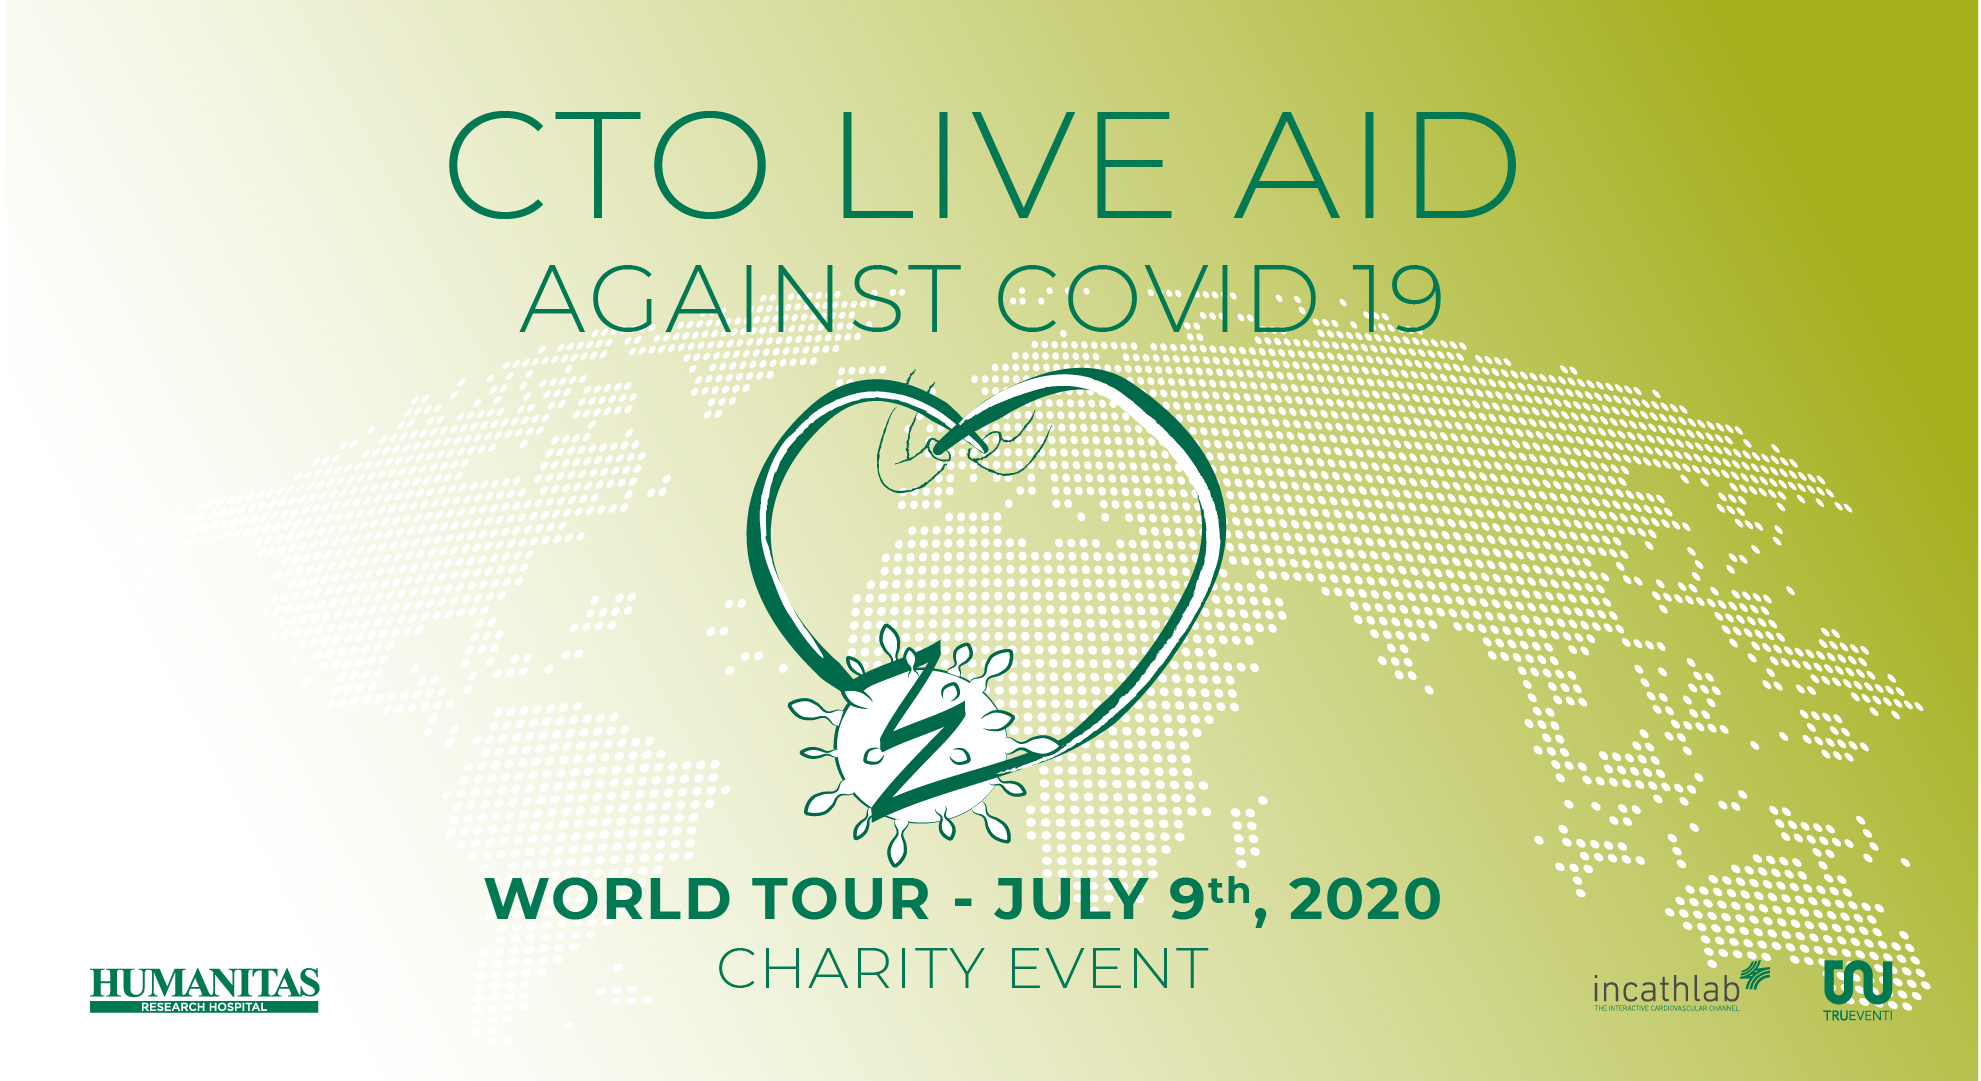 CTO LIVE AID - WORLD TOUR AGAINST COVID-19